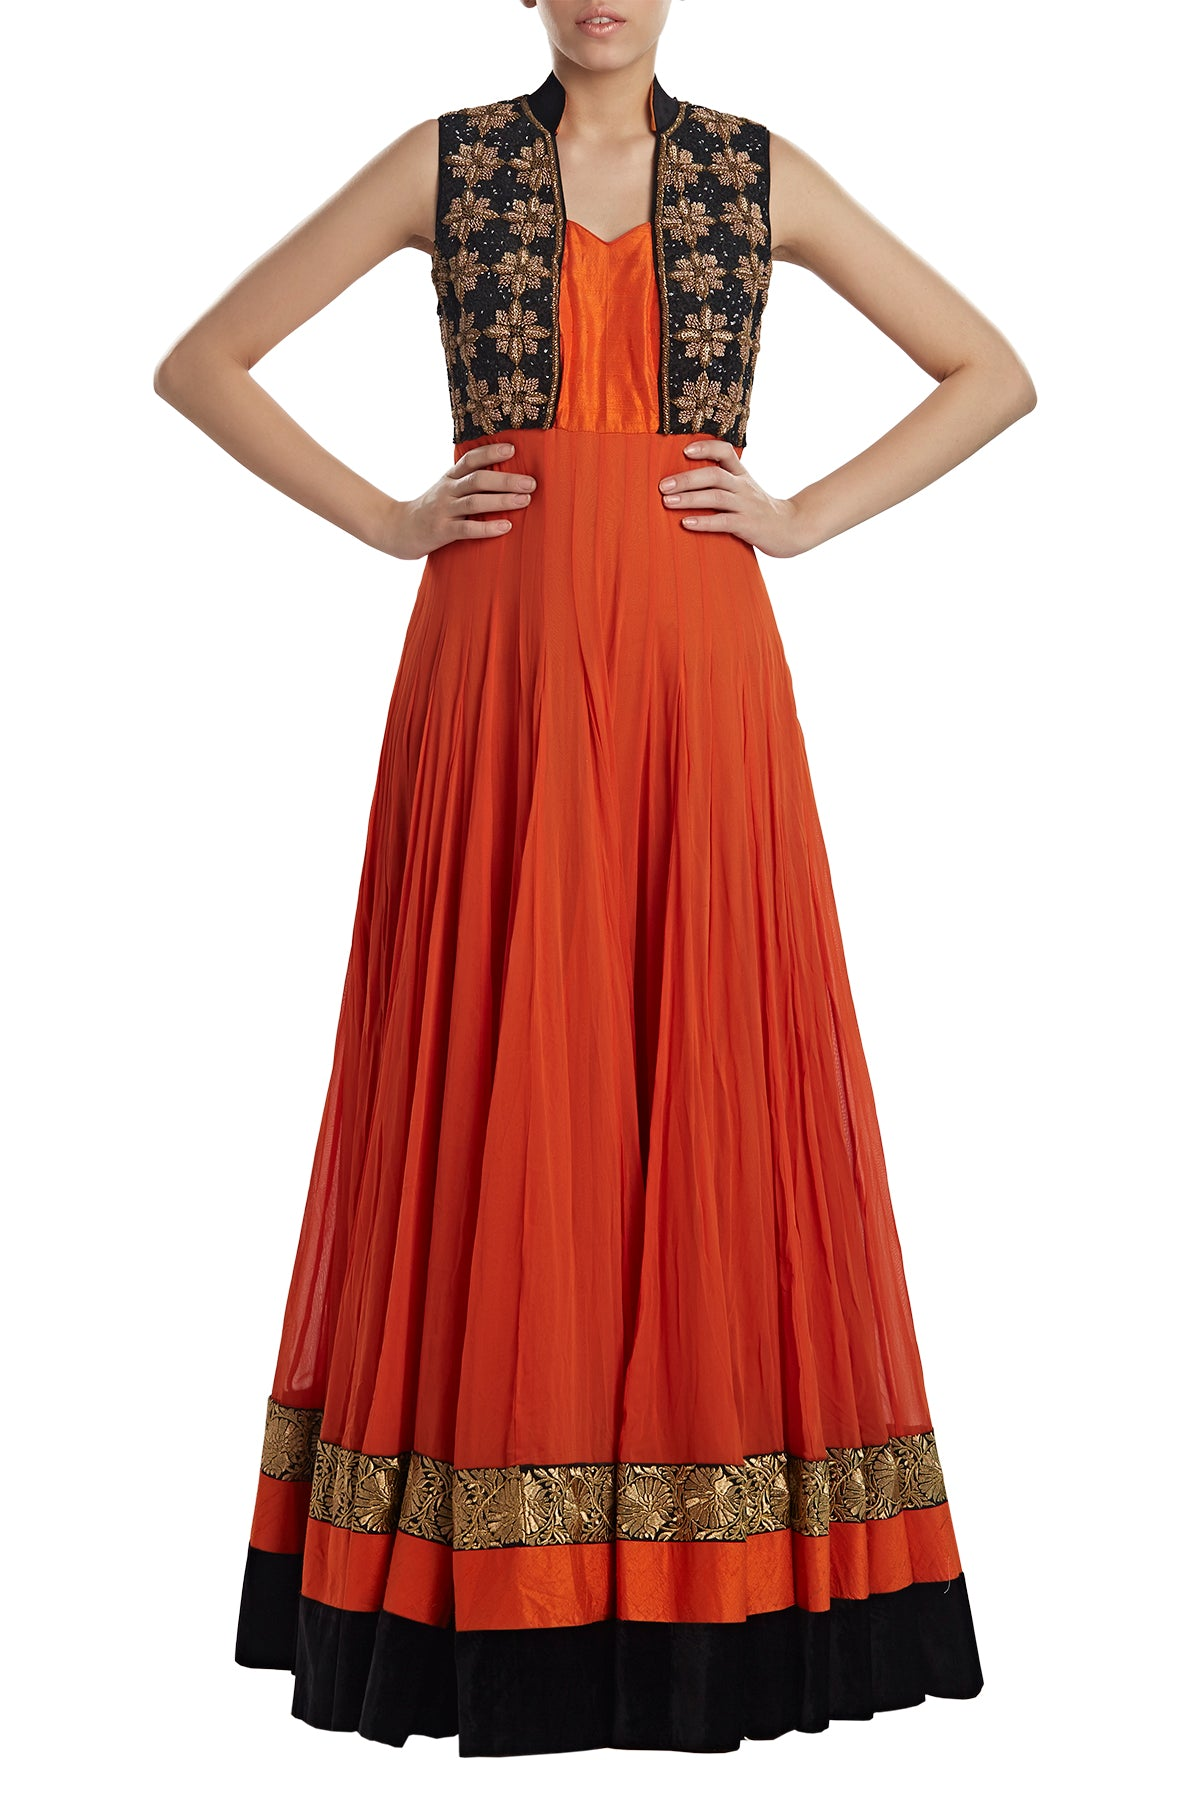 Orange you glad you can get your hands on this one! This georgette anarkali comes in rich black & gold with embroidery and latkans.